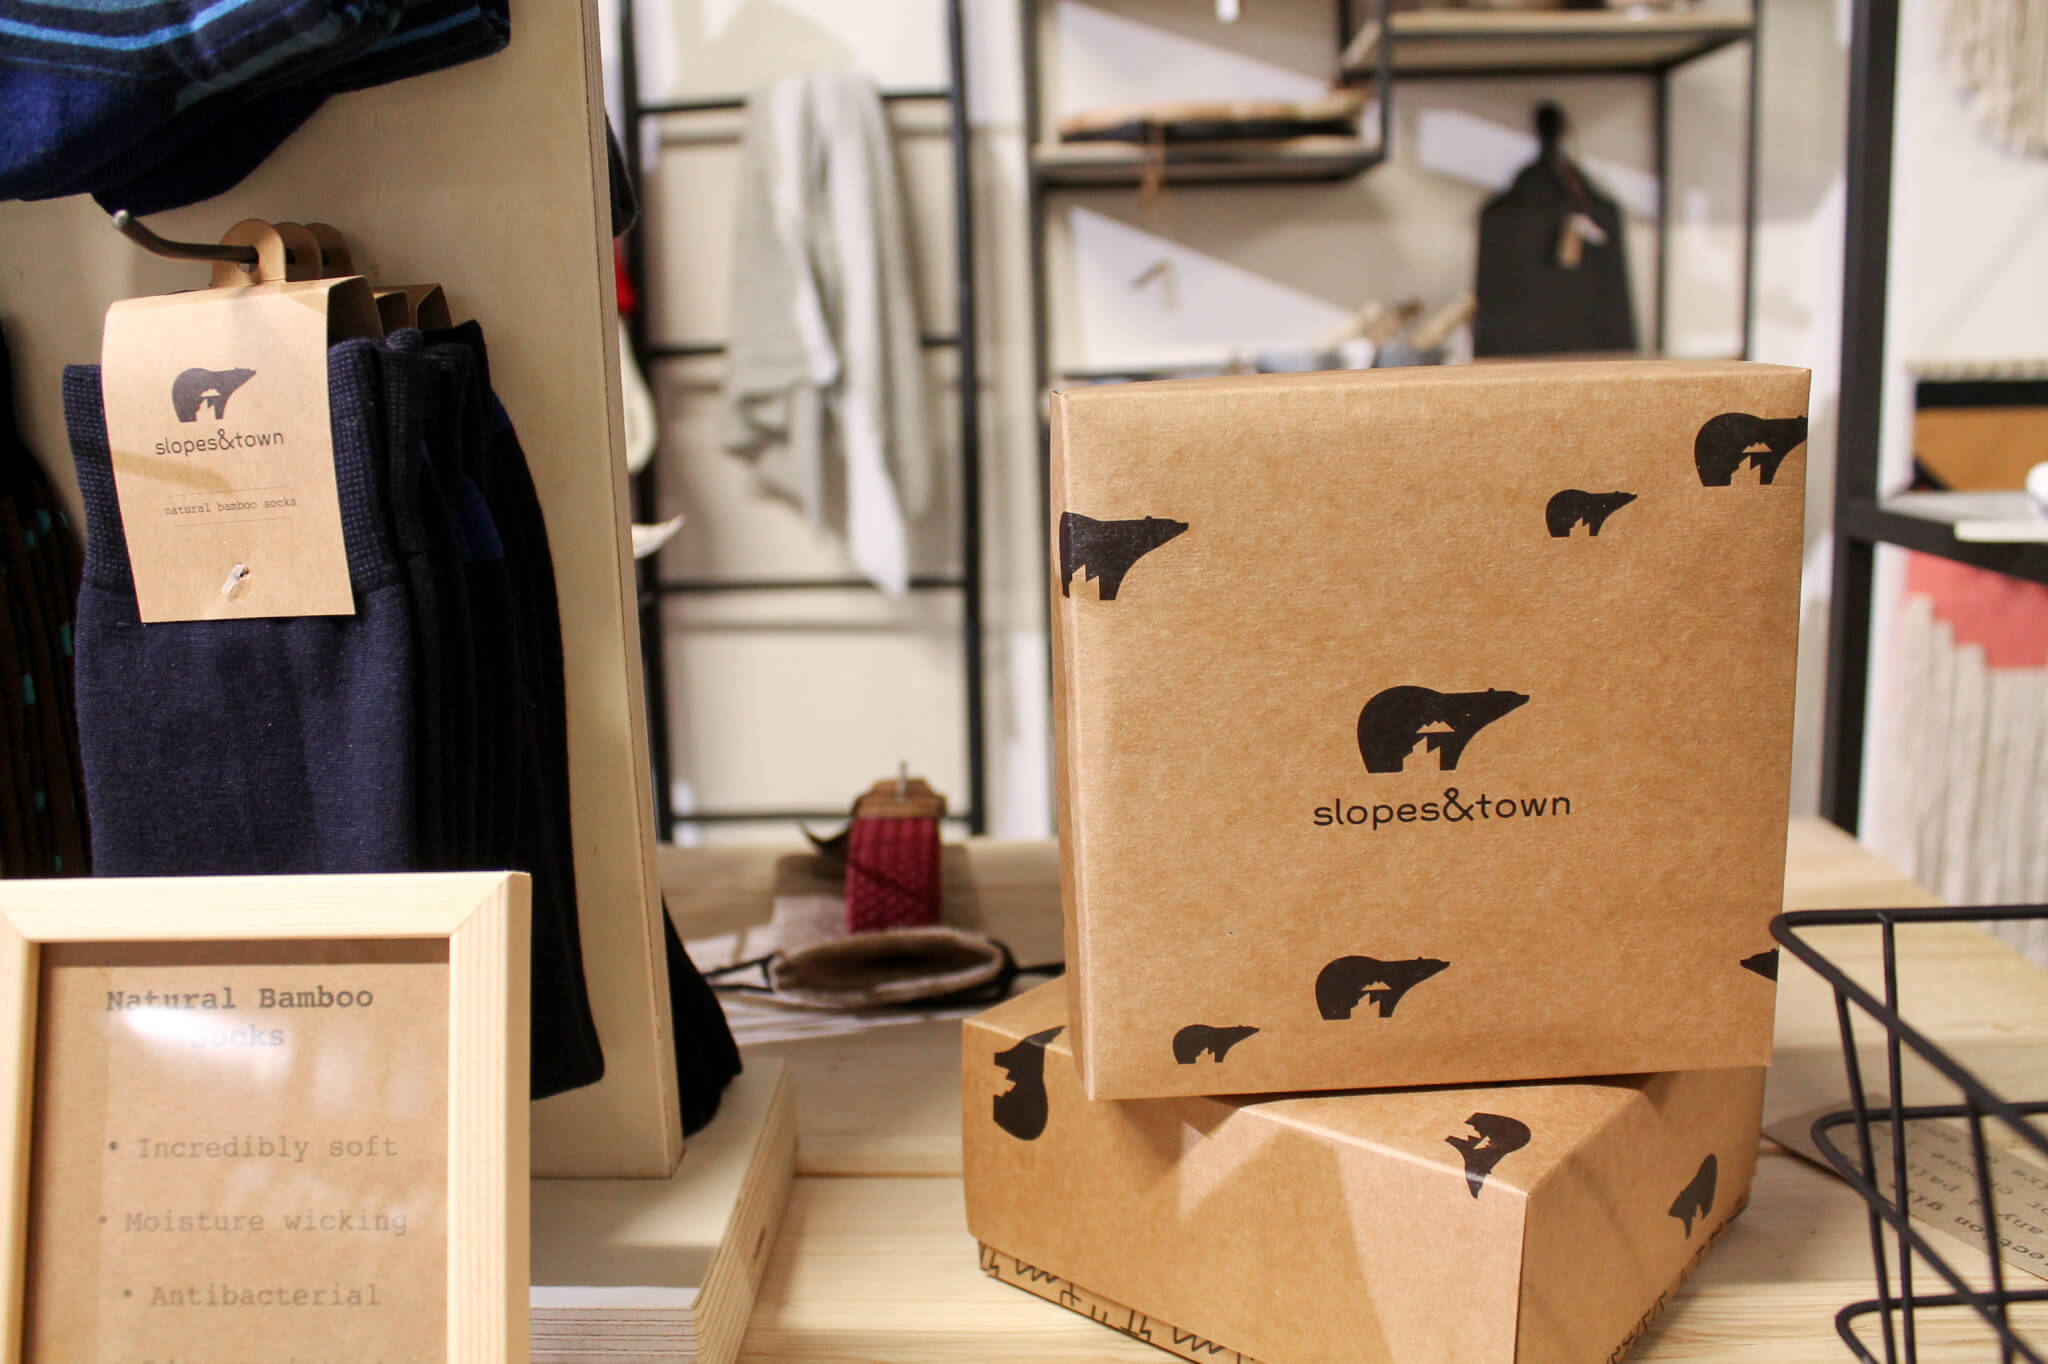 slopes & town sustainable packaging